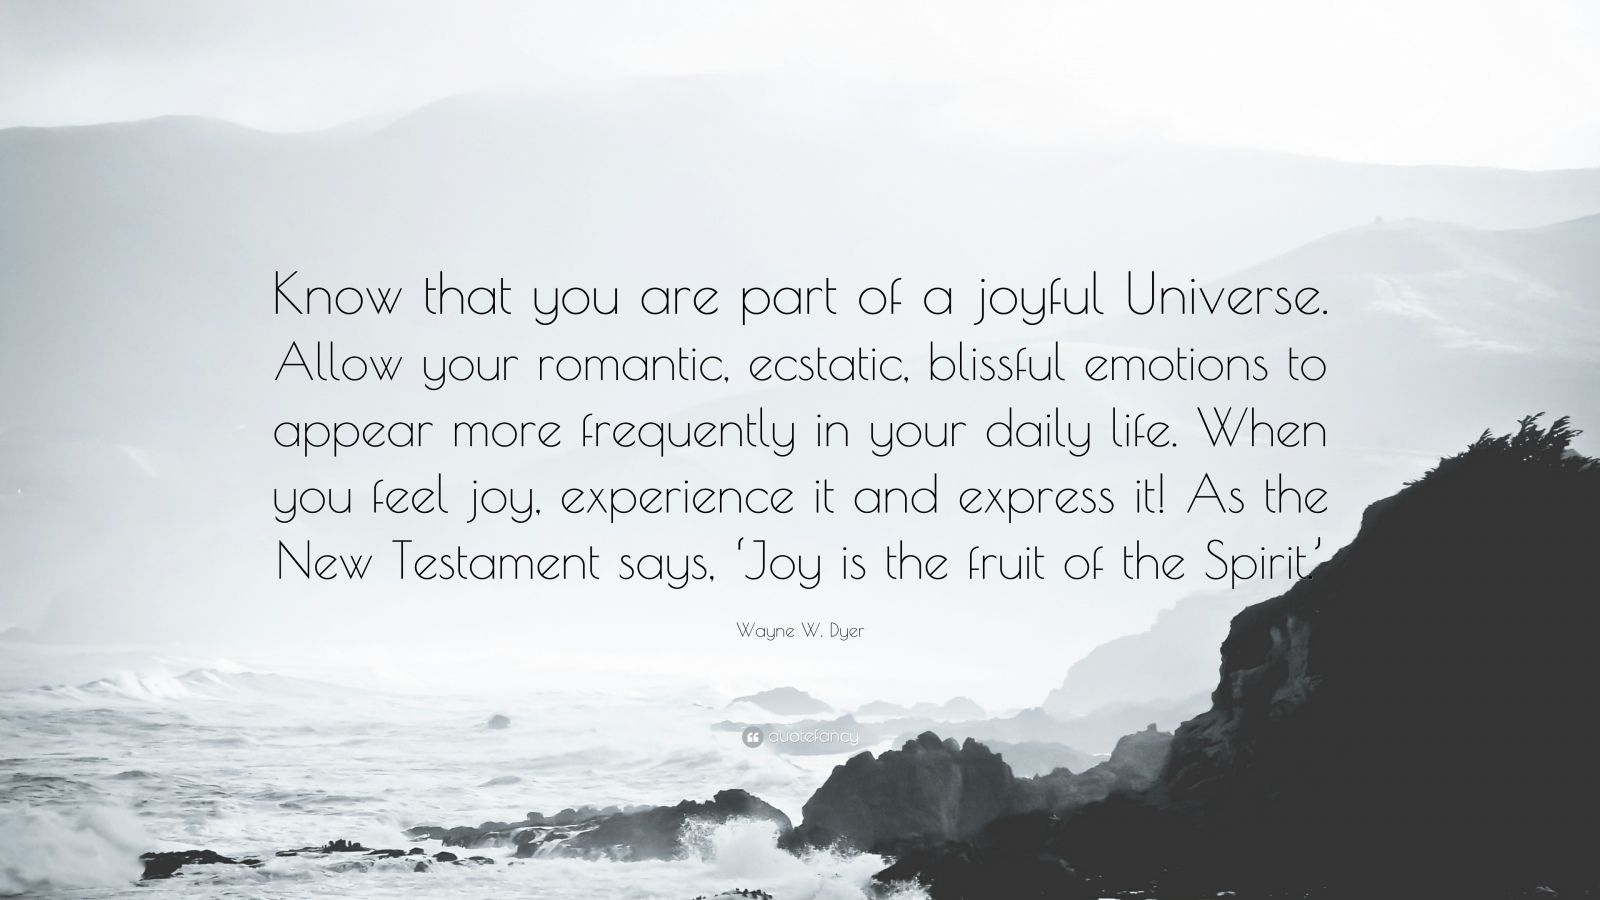 """Wayne W. Dyer Quote: """"Know that you are part of a joyful Universe. Allow your romantic, ecstatic, blissful emotions to appear more frequently in your daily life. When you feel joy, experience it and express it! As the New Testament says, 'Joy is the fruit of the Spirit.'"""""""